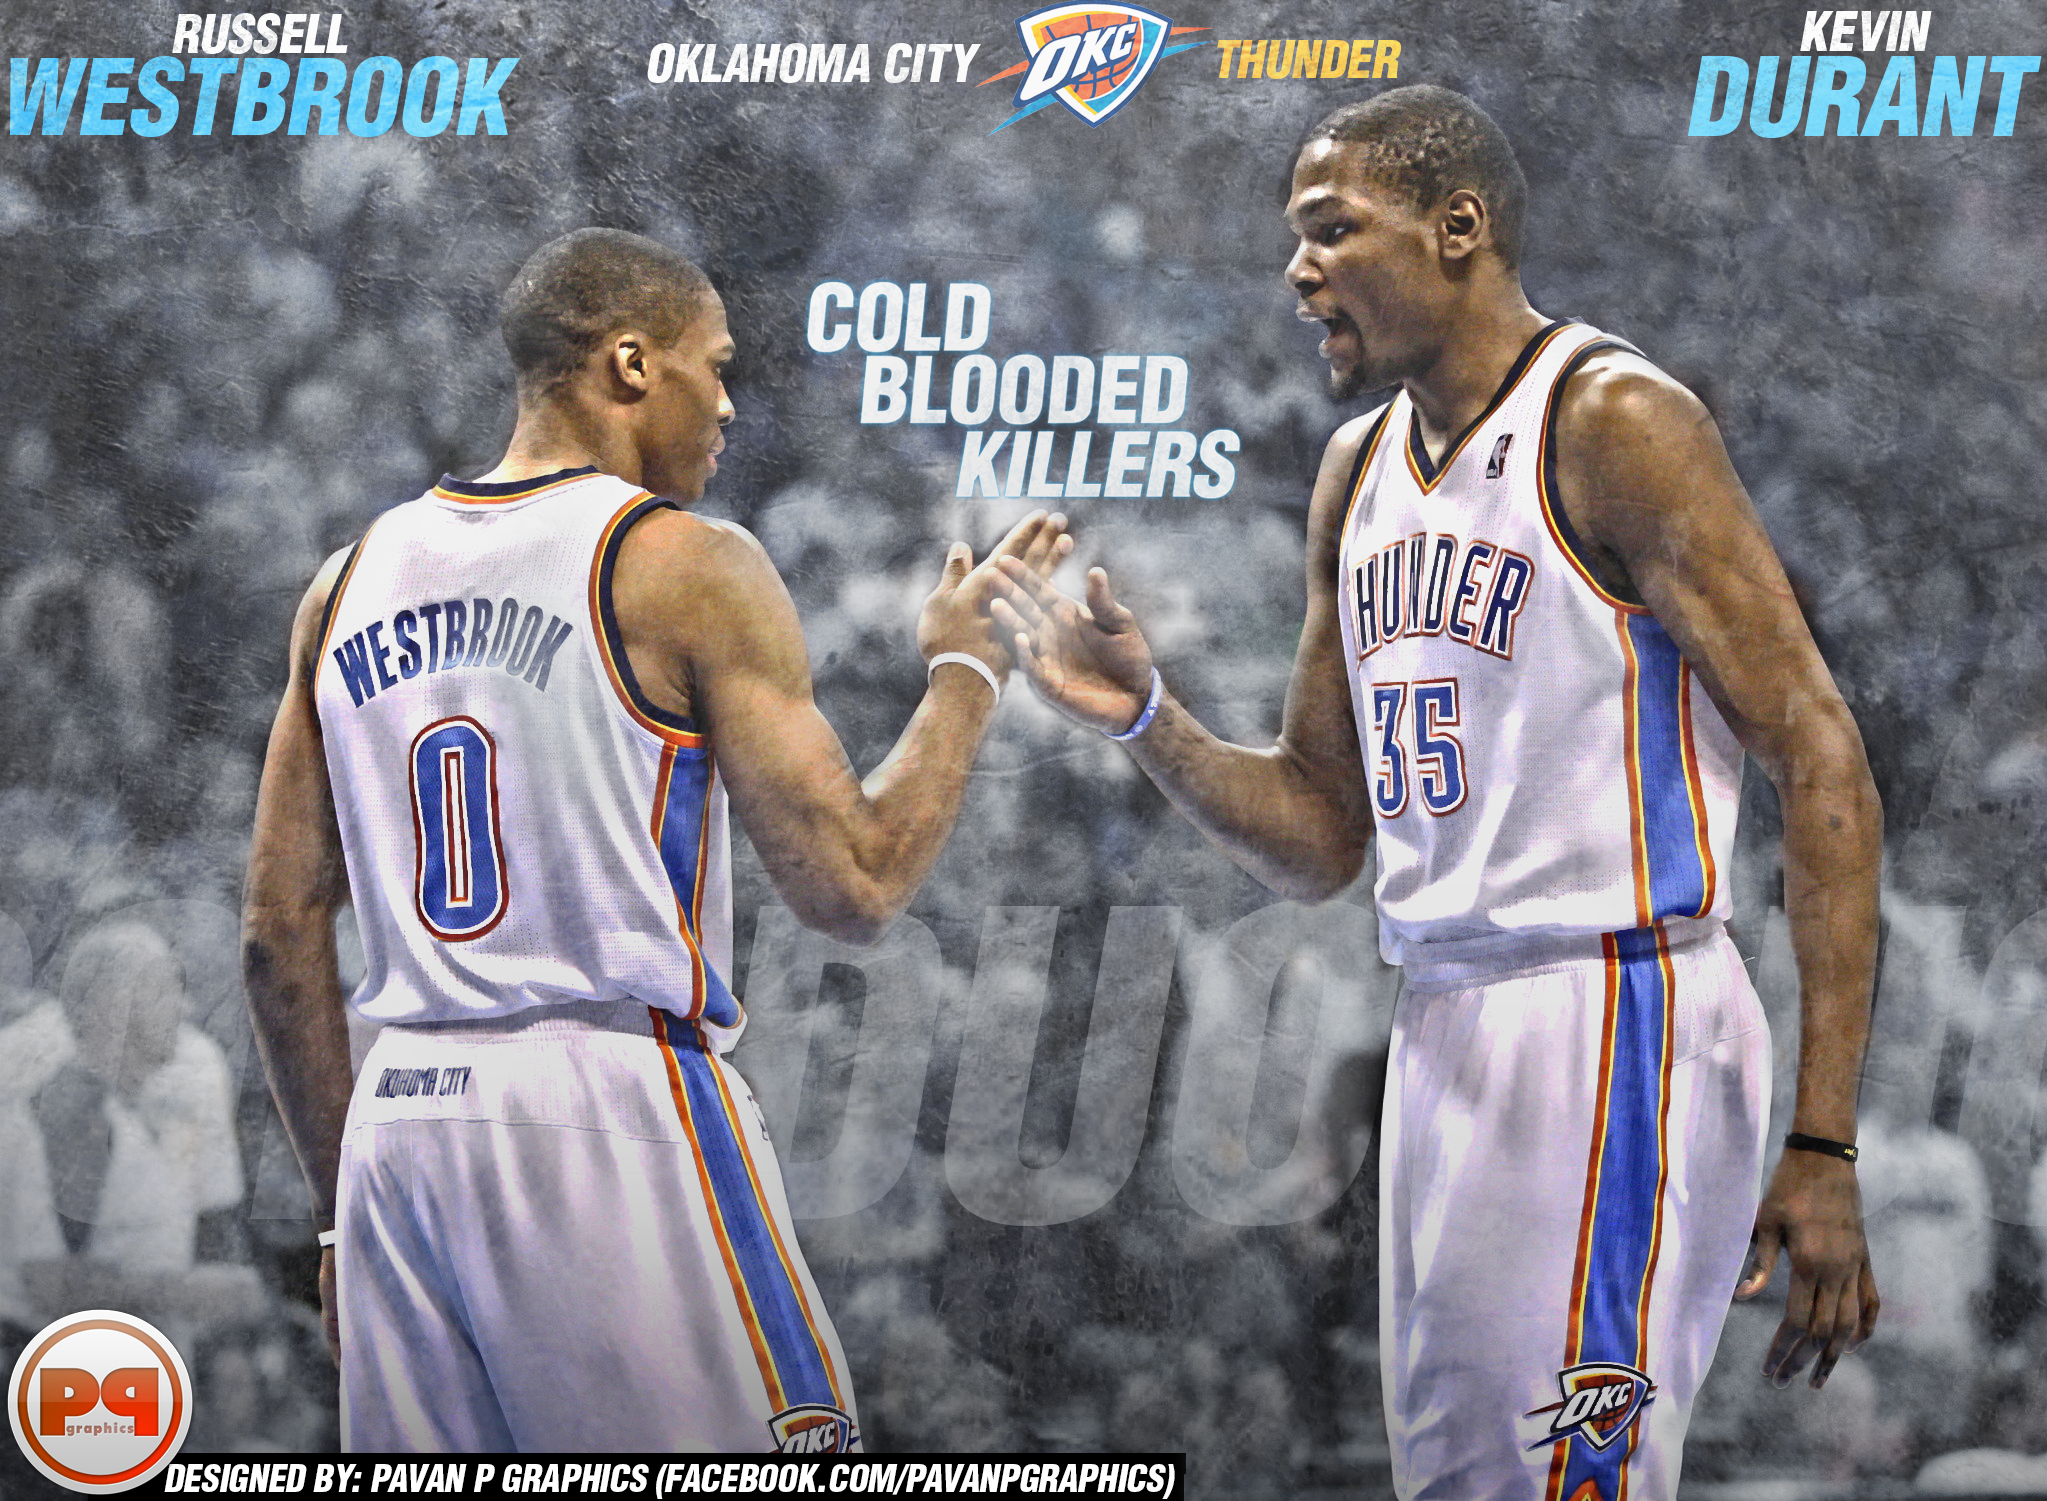 50] Kevin Durant And Russell Westbrook 2015 Wallpaper on 2047x1501